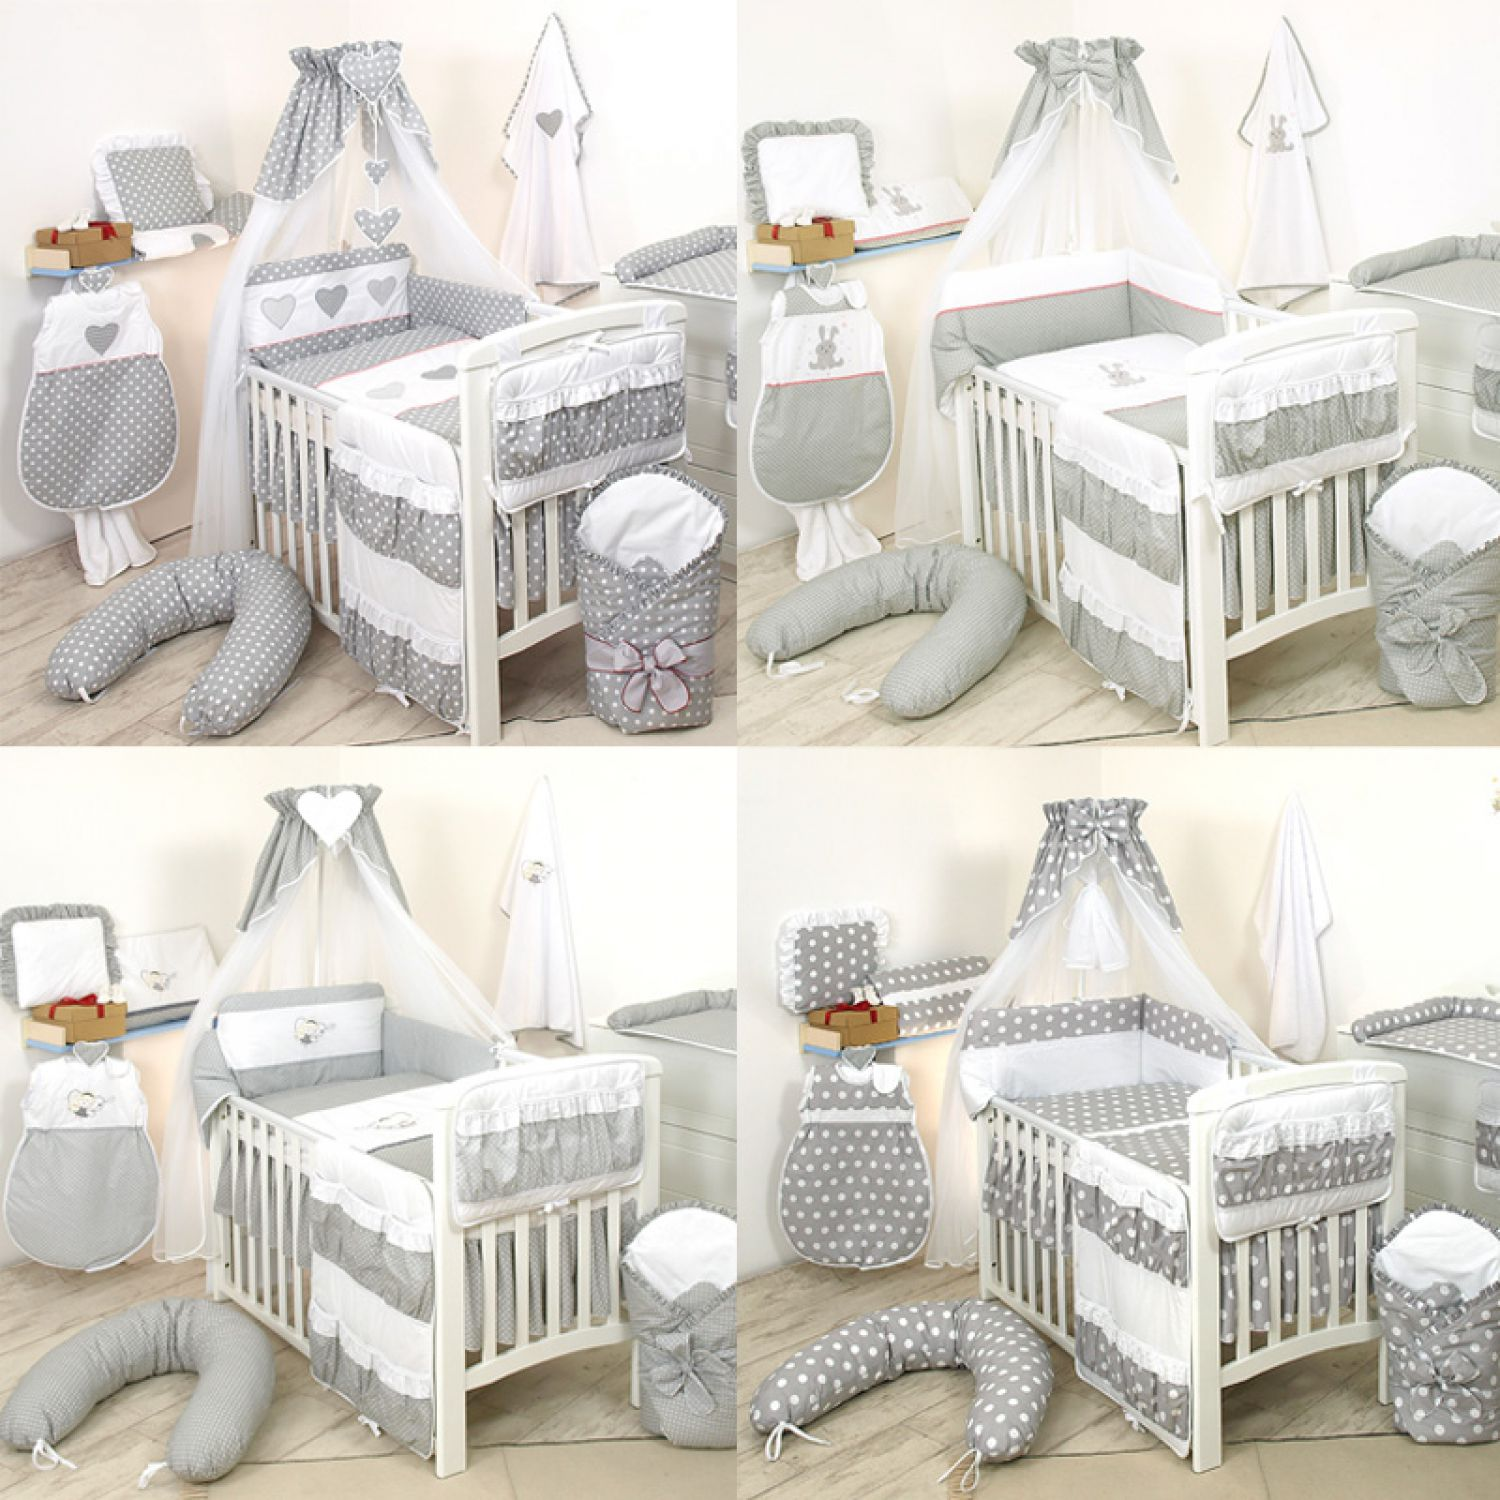 10tlg babybettw sche 135x100cm kinderbettw sche bettw sche himmel nestchen set ebay. Black Bedroom Furniture Sets. Home Design Ideas